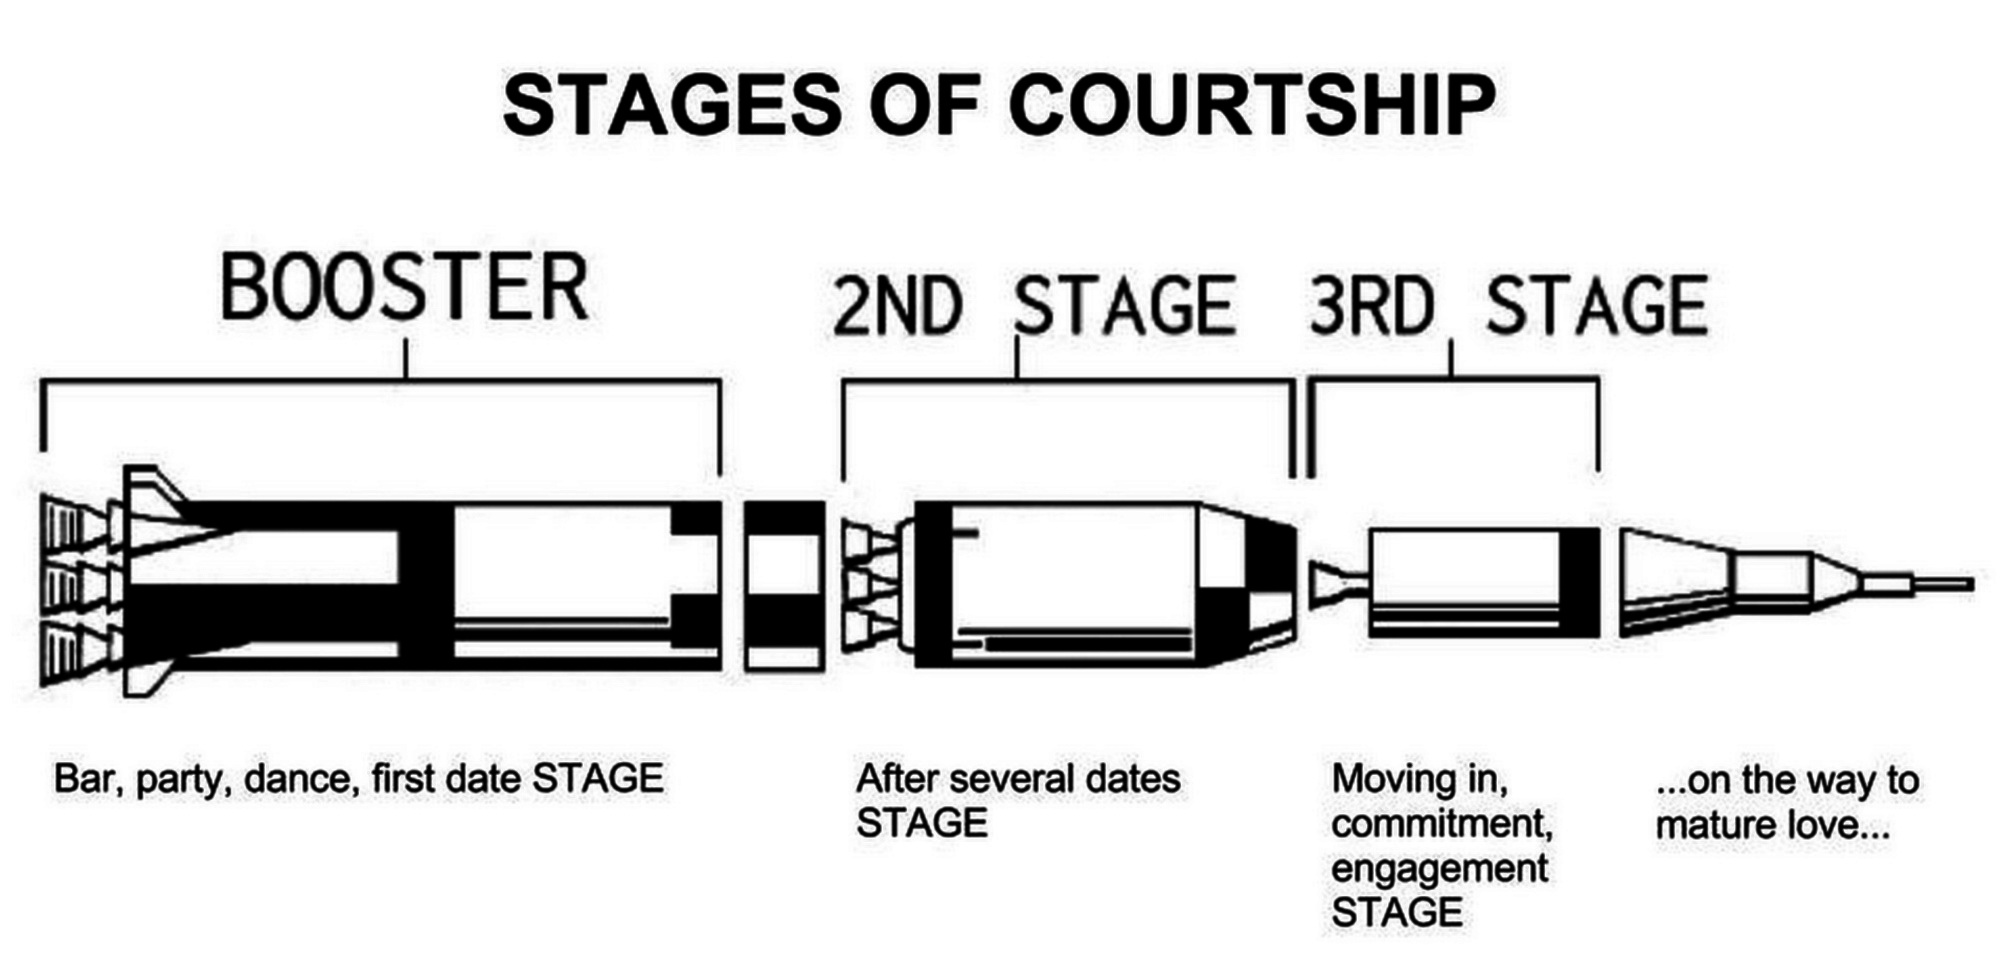 5 stages of courtship